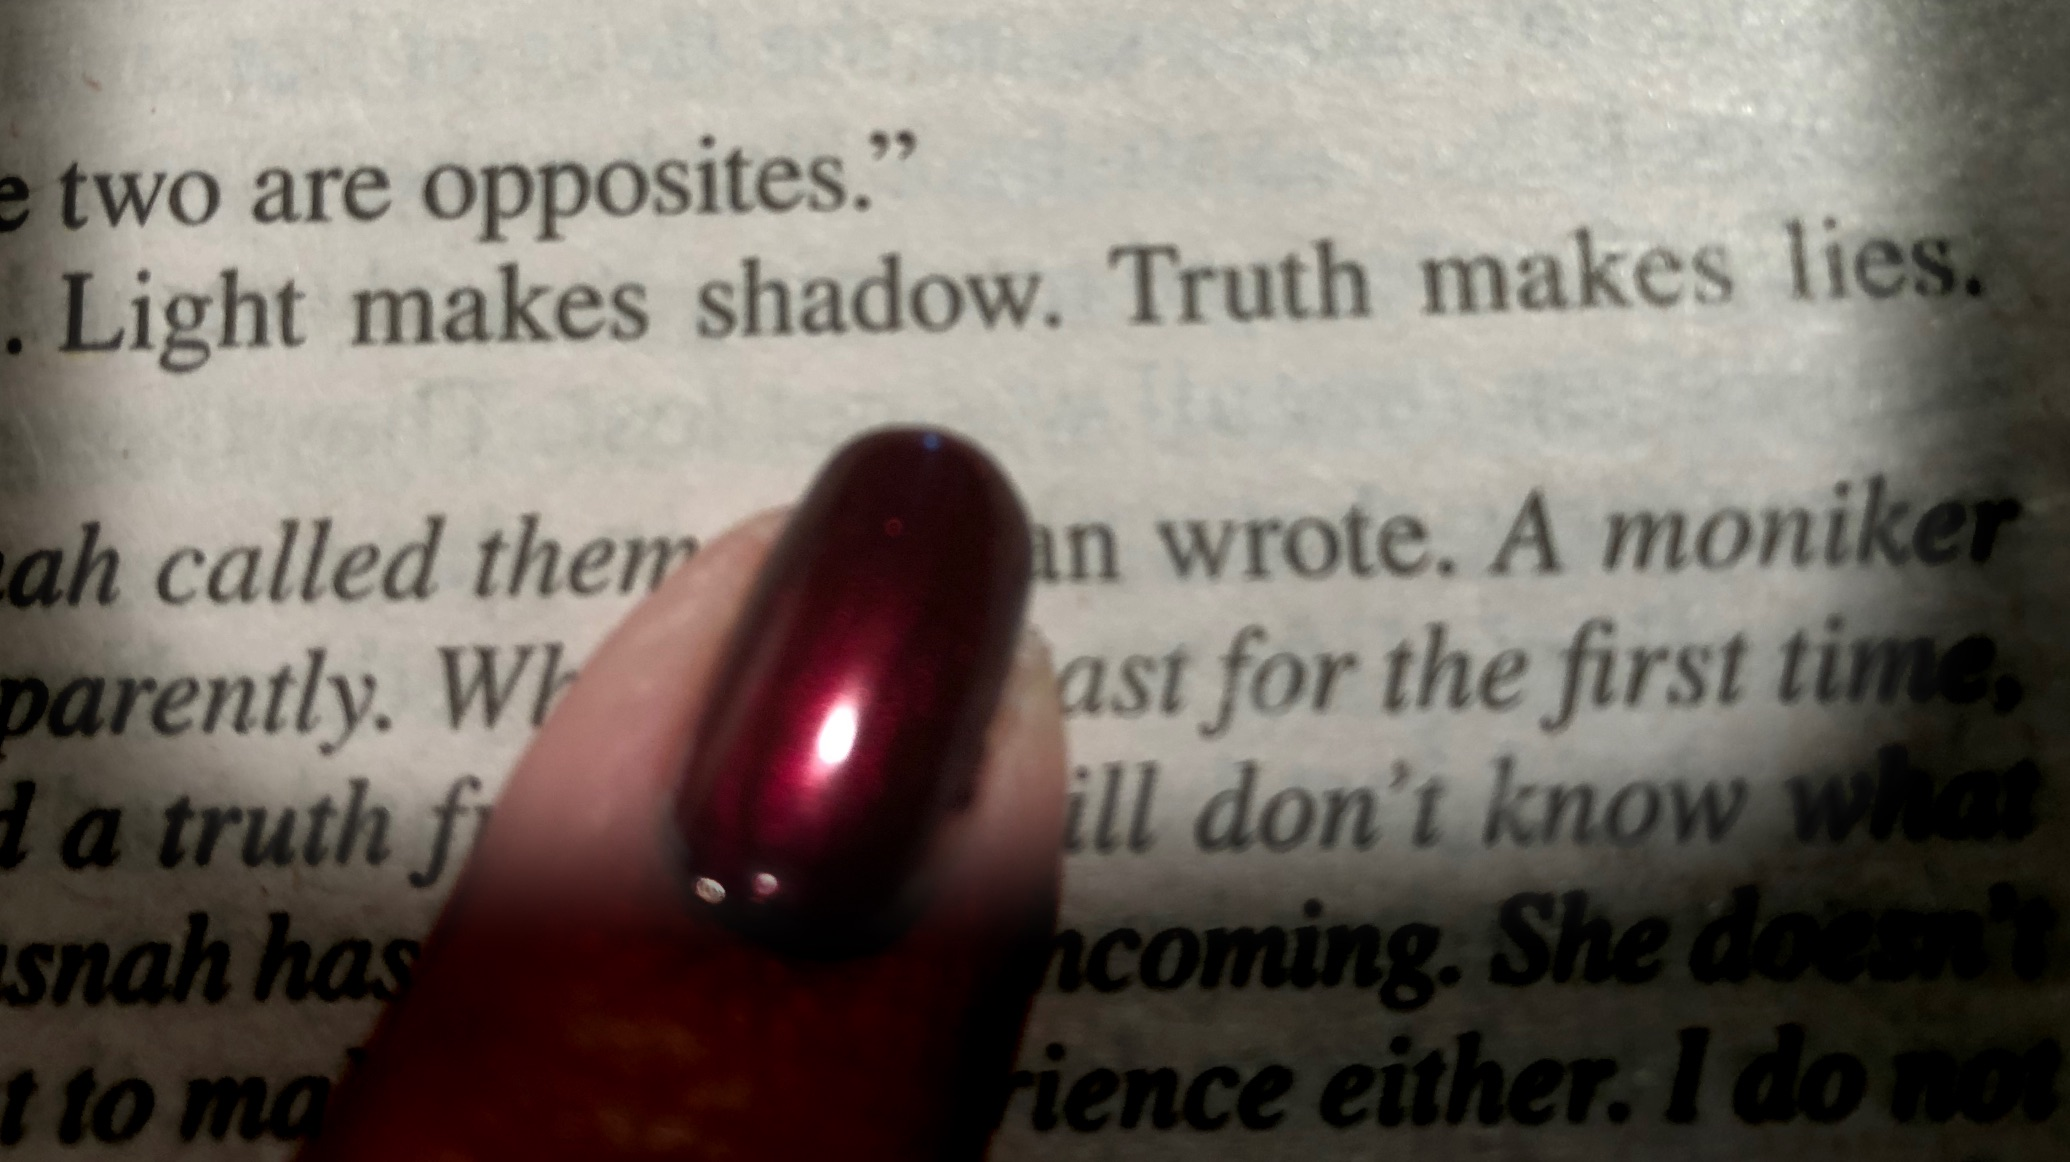 Light makes shadow. Truth makes lies.